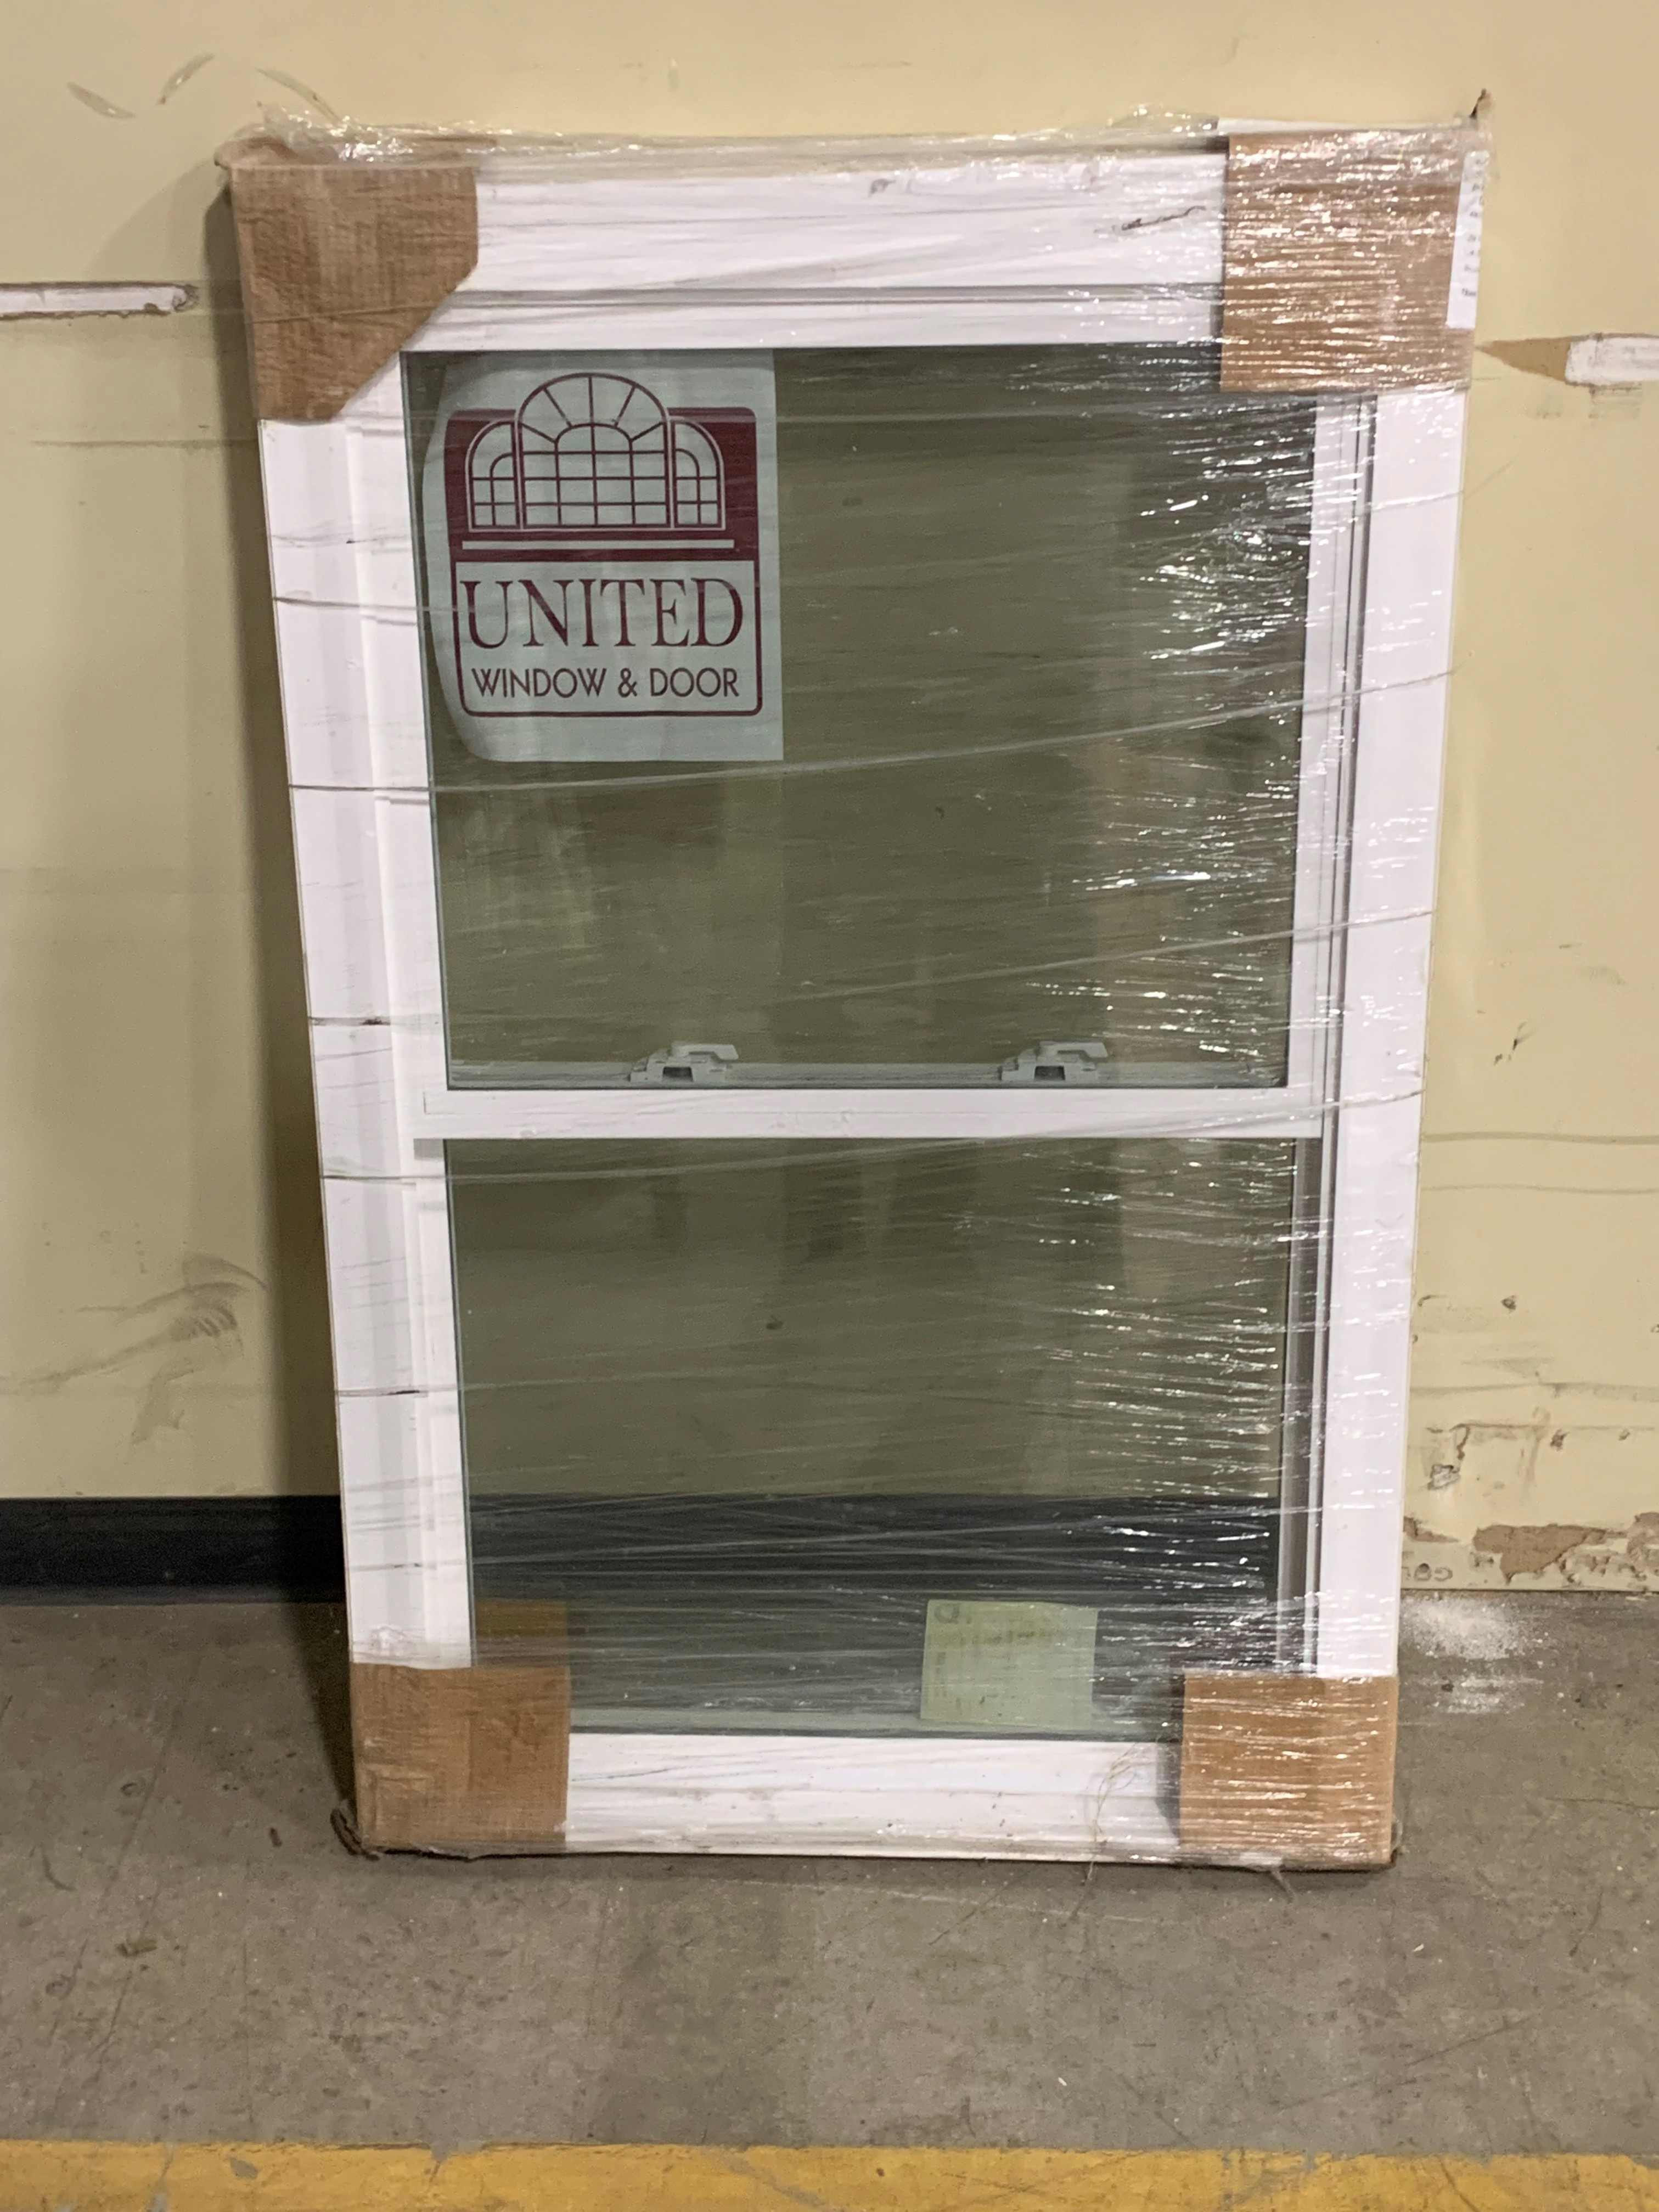 UNITED Vinyl Double Hung Window